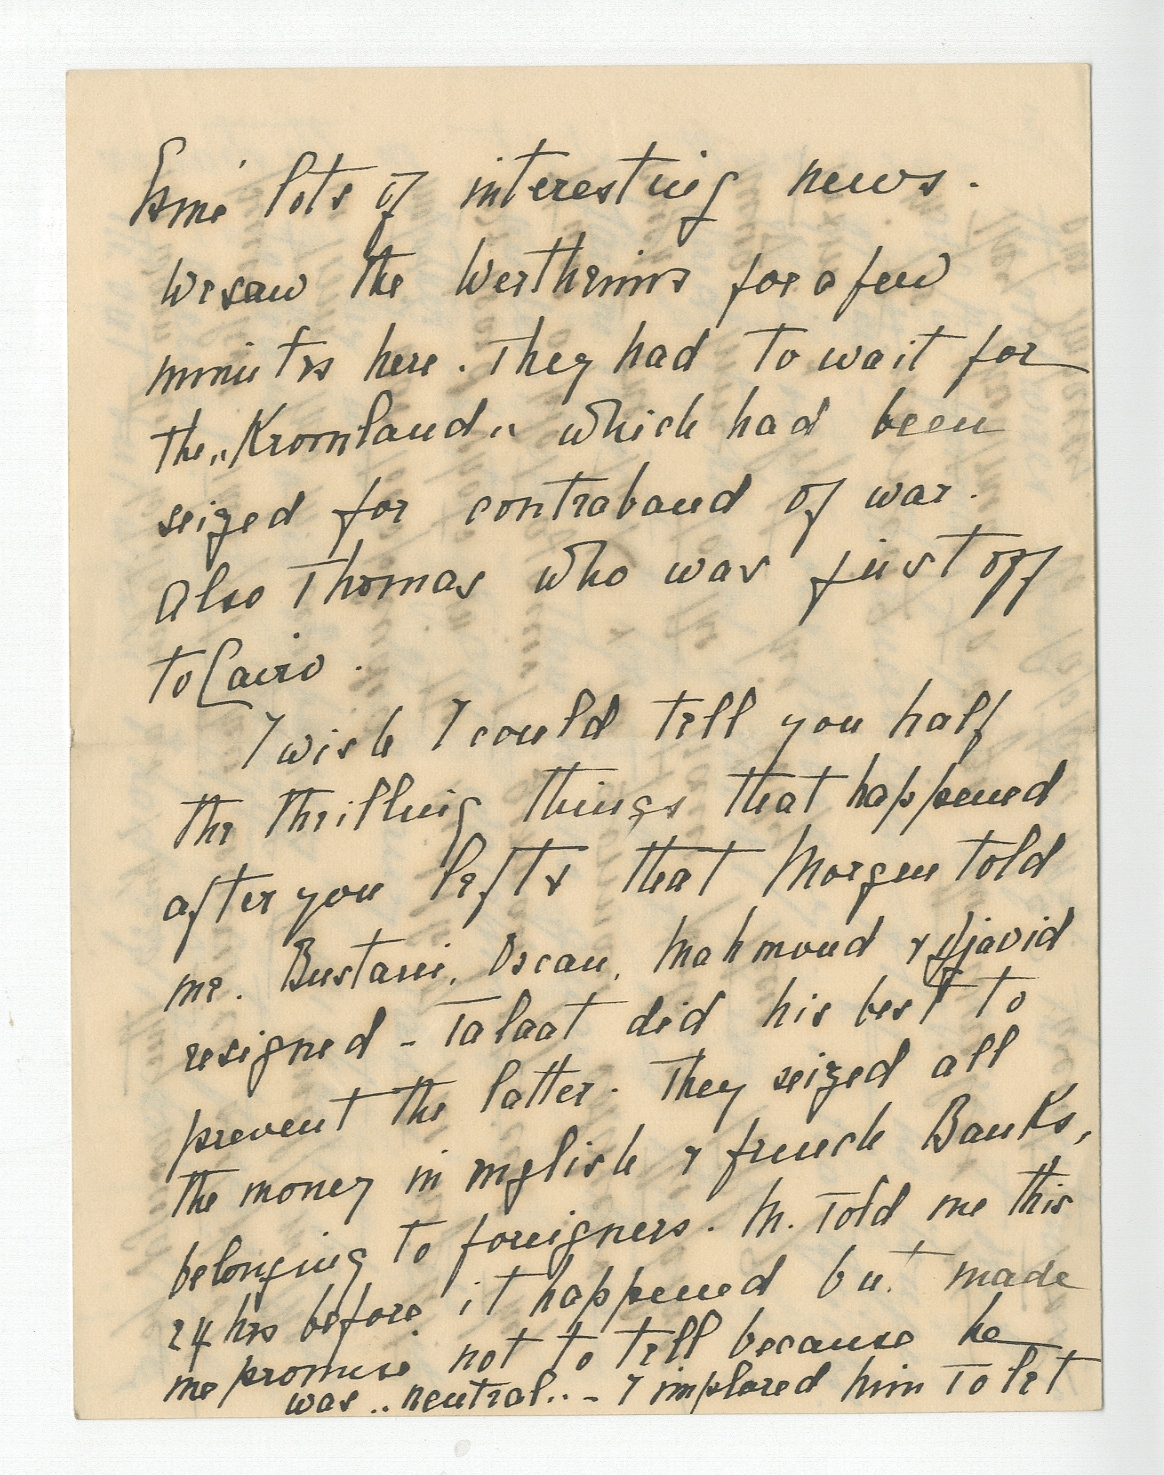 Page from a letter to Louis du Pan Mallet from Blanche Ovey, dated Athens, 19 November 1914.